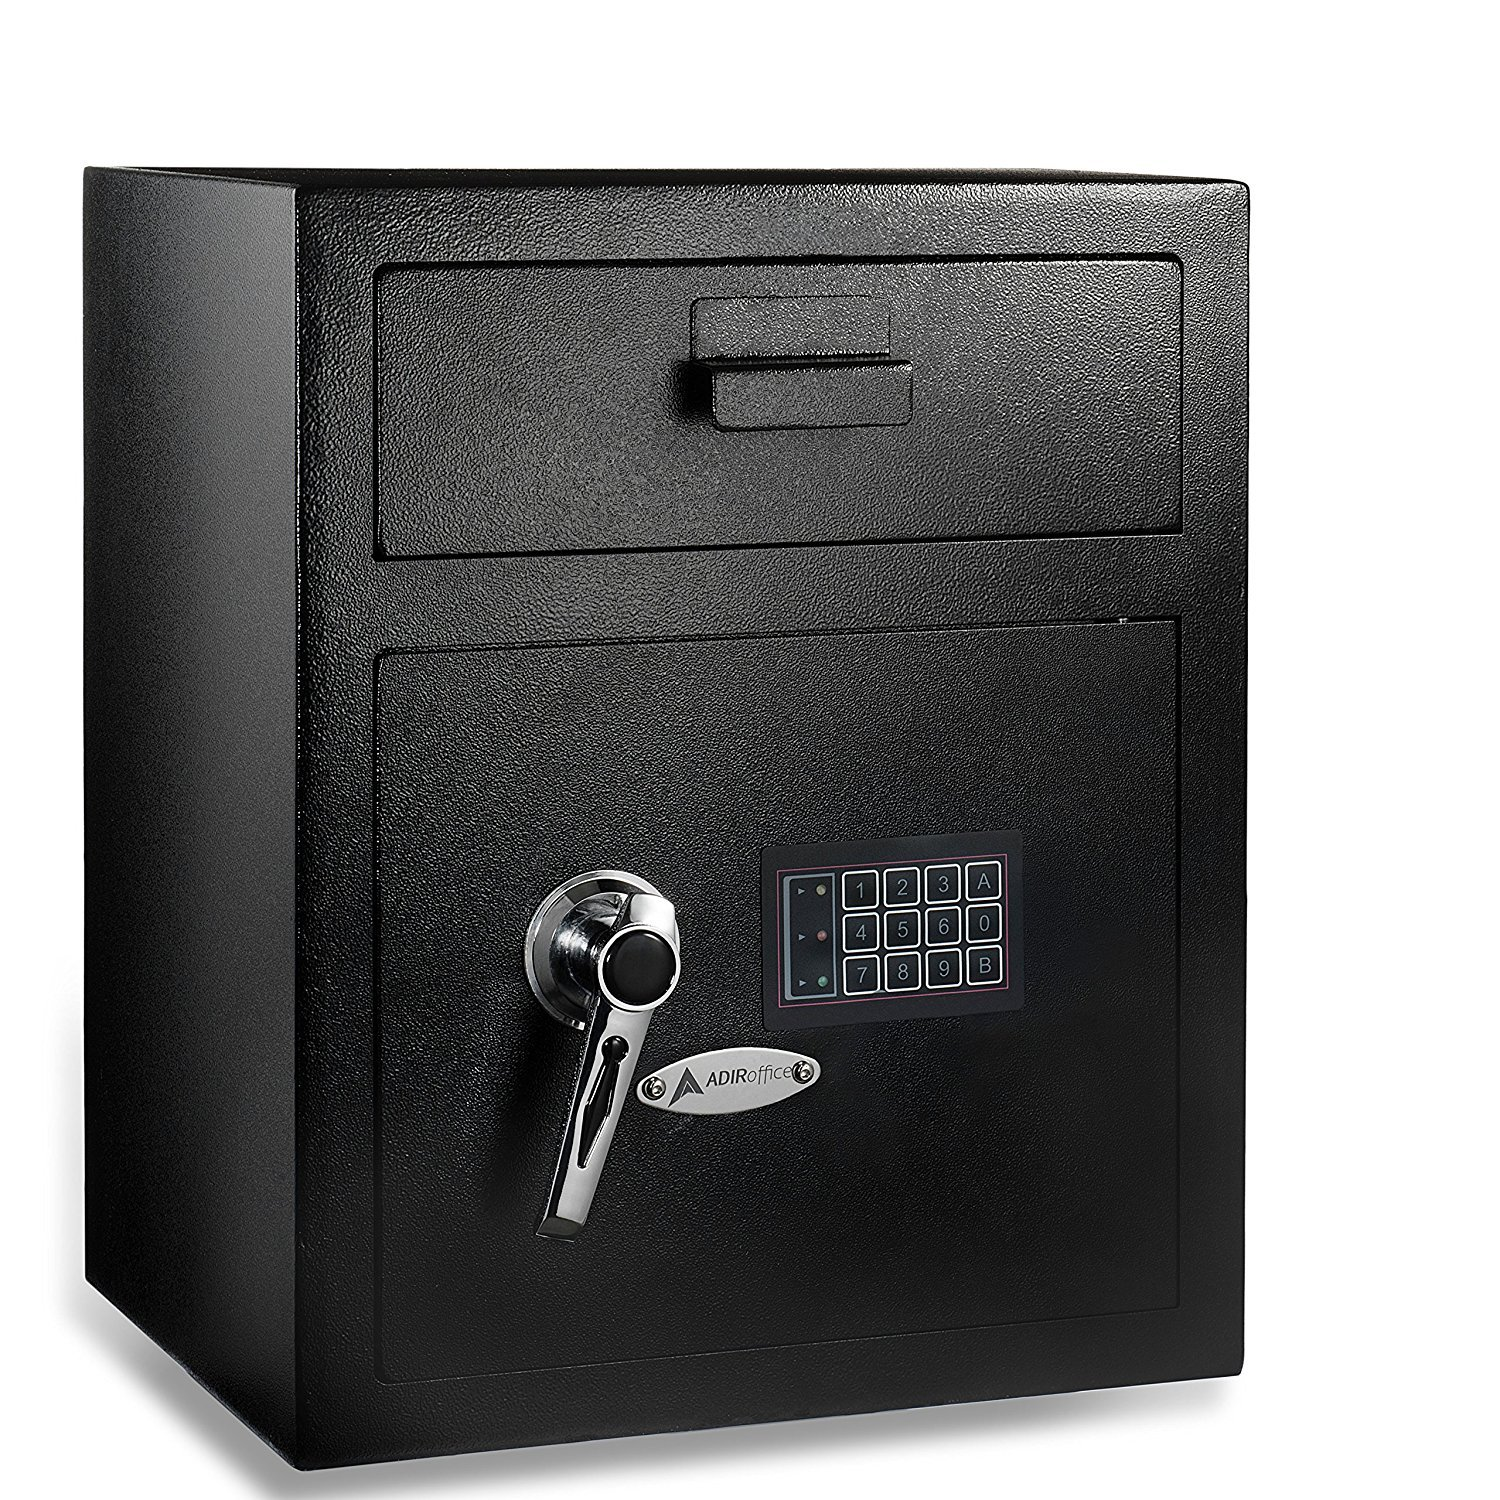 AdirOffice Digital Depository Safe - Front Loading - Digital Keypad Lock - Lockout Mode (Black) by AdirOffice